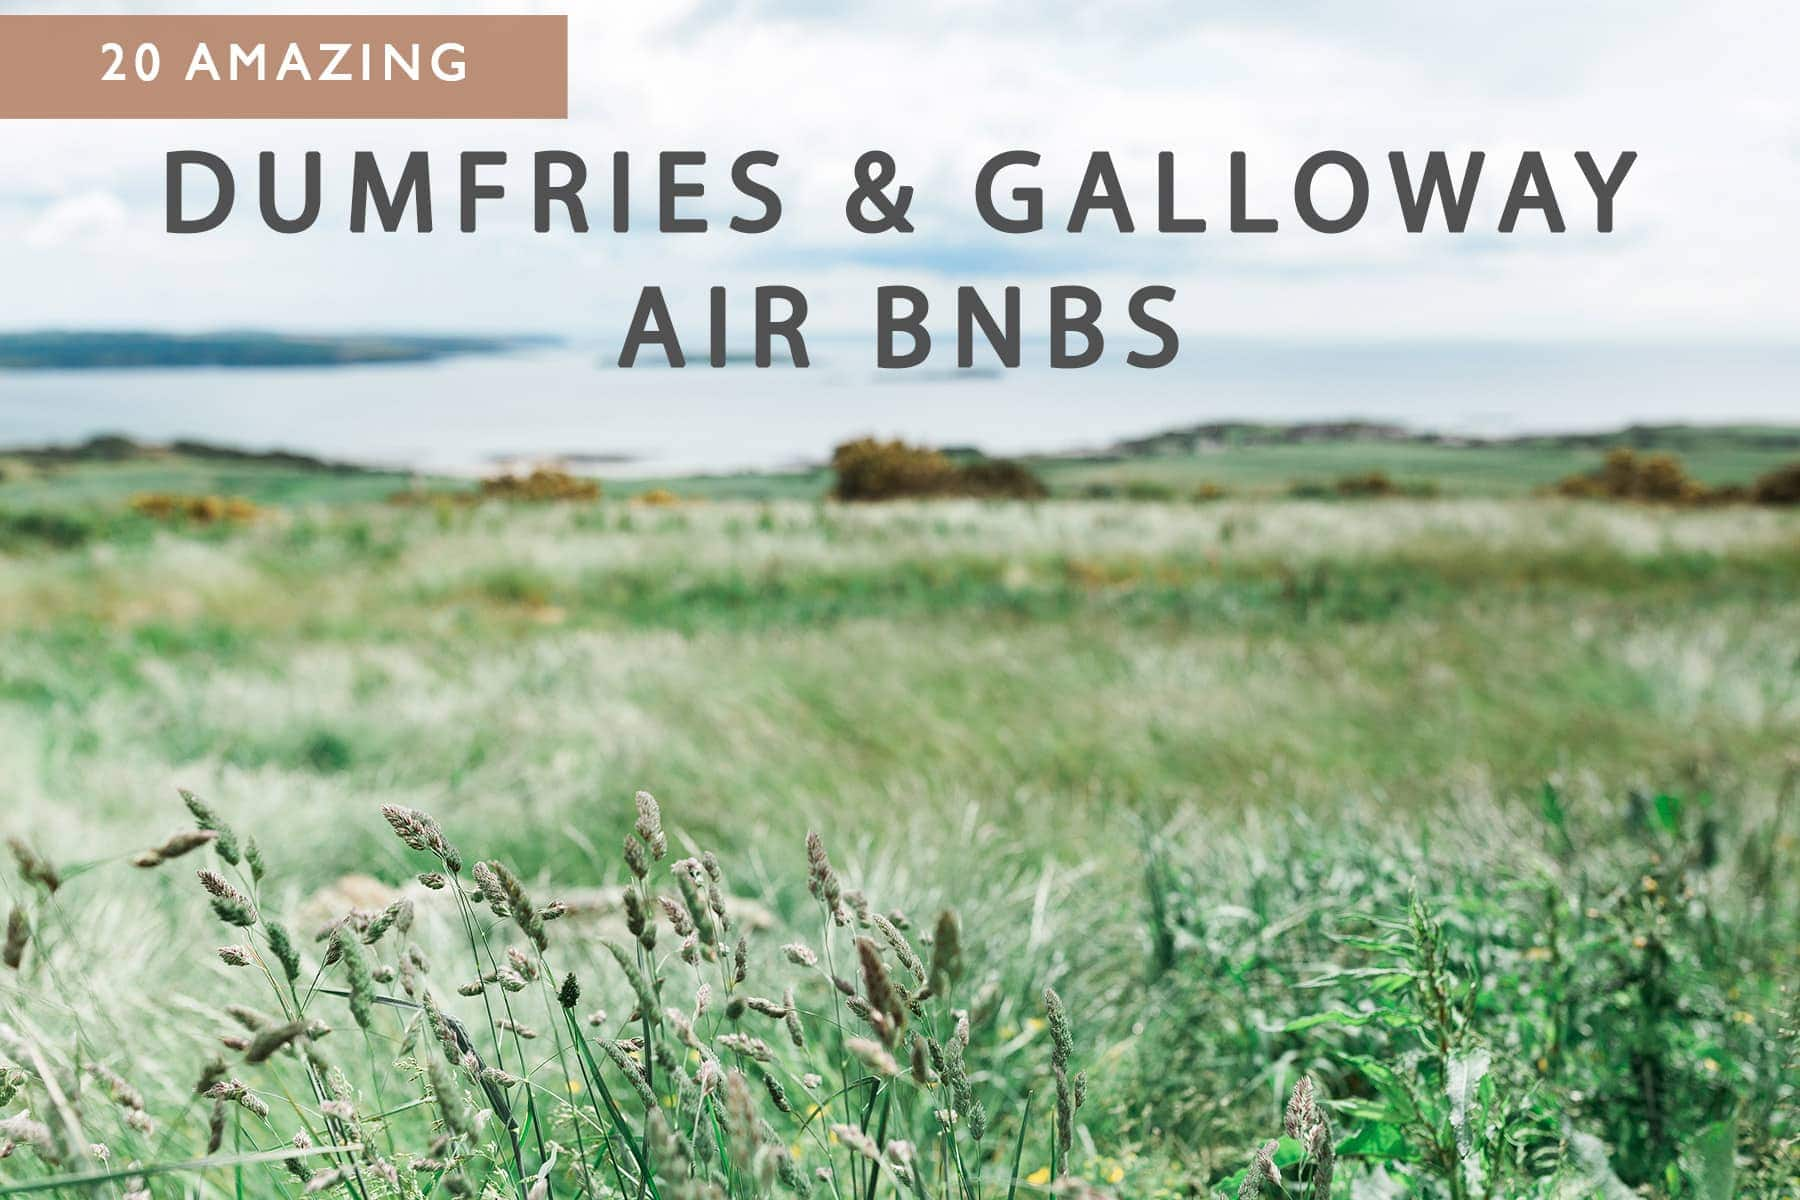 dumfries and galloway airbnb best places to stay and visit